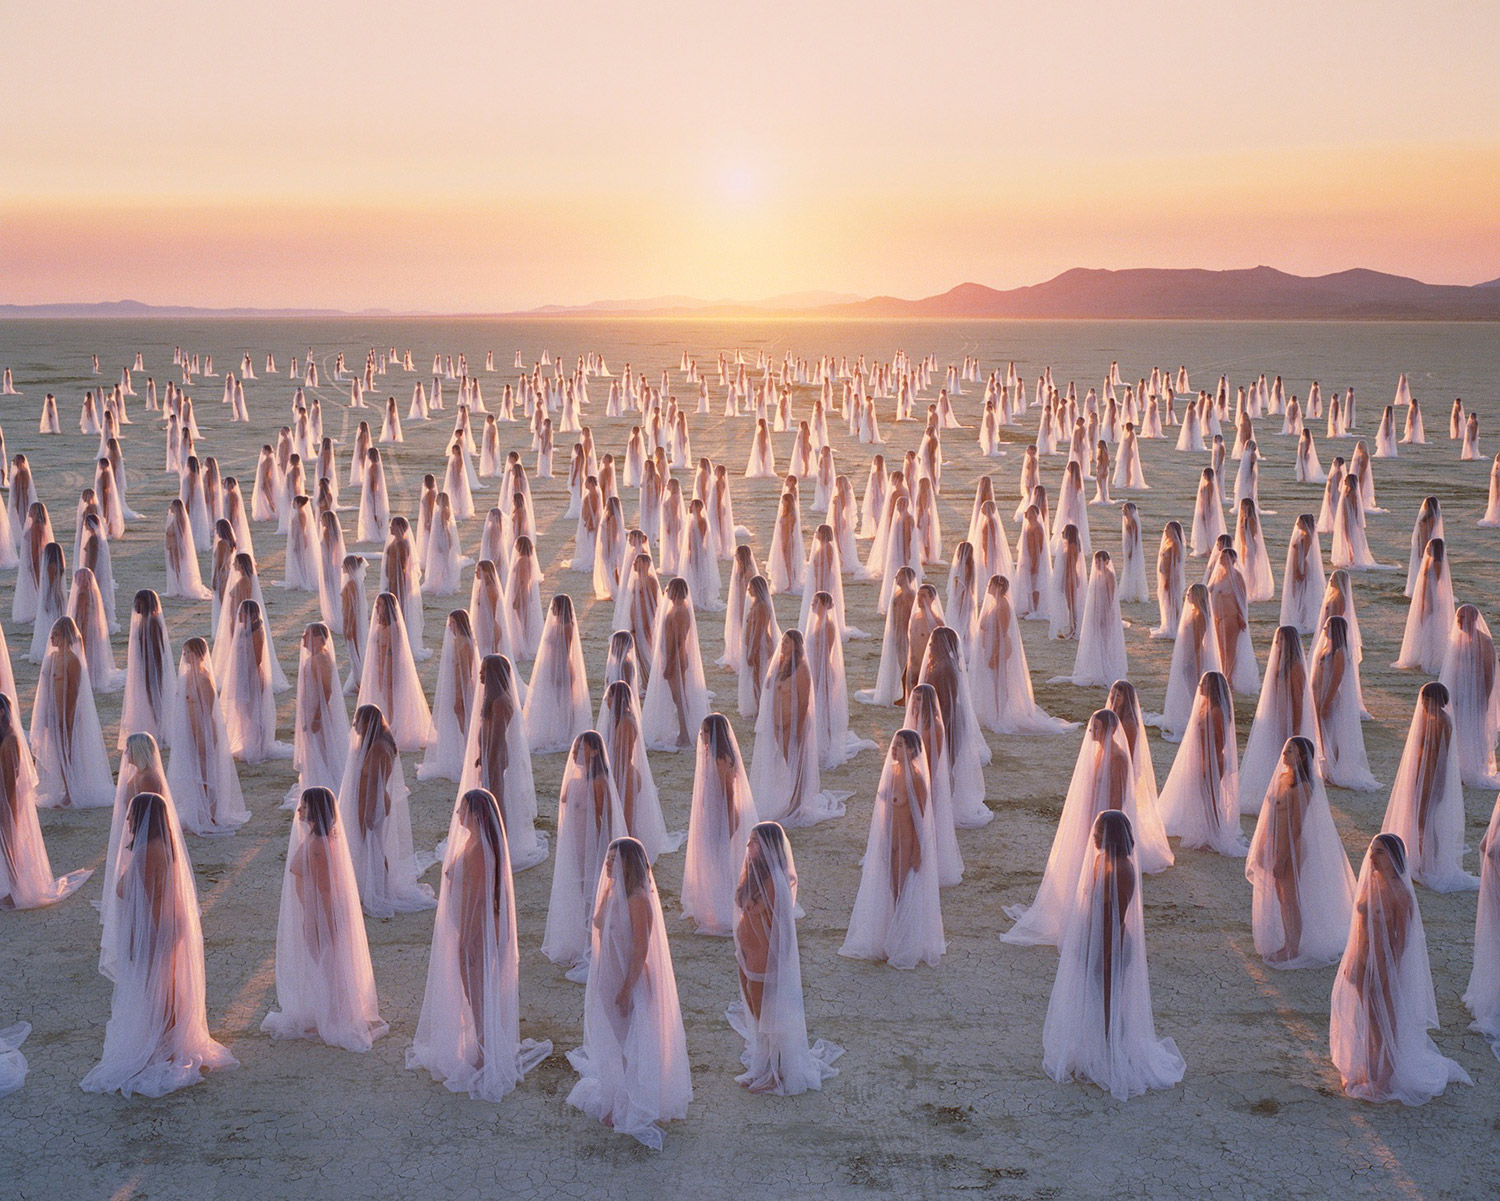 Spencer Tunick - bodies wearing gauzy fabric in Black Rock Desert, Burning Man